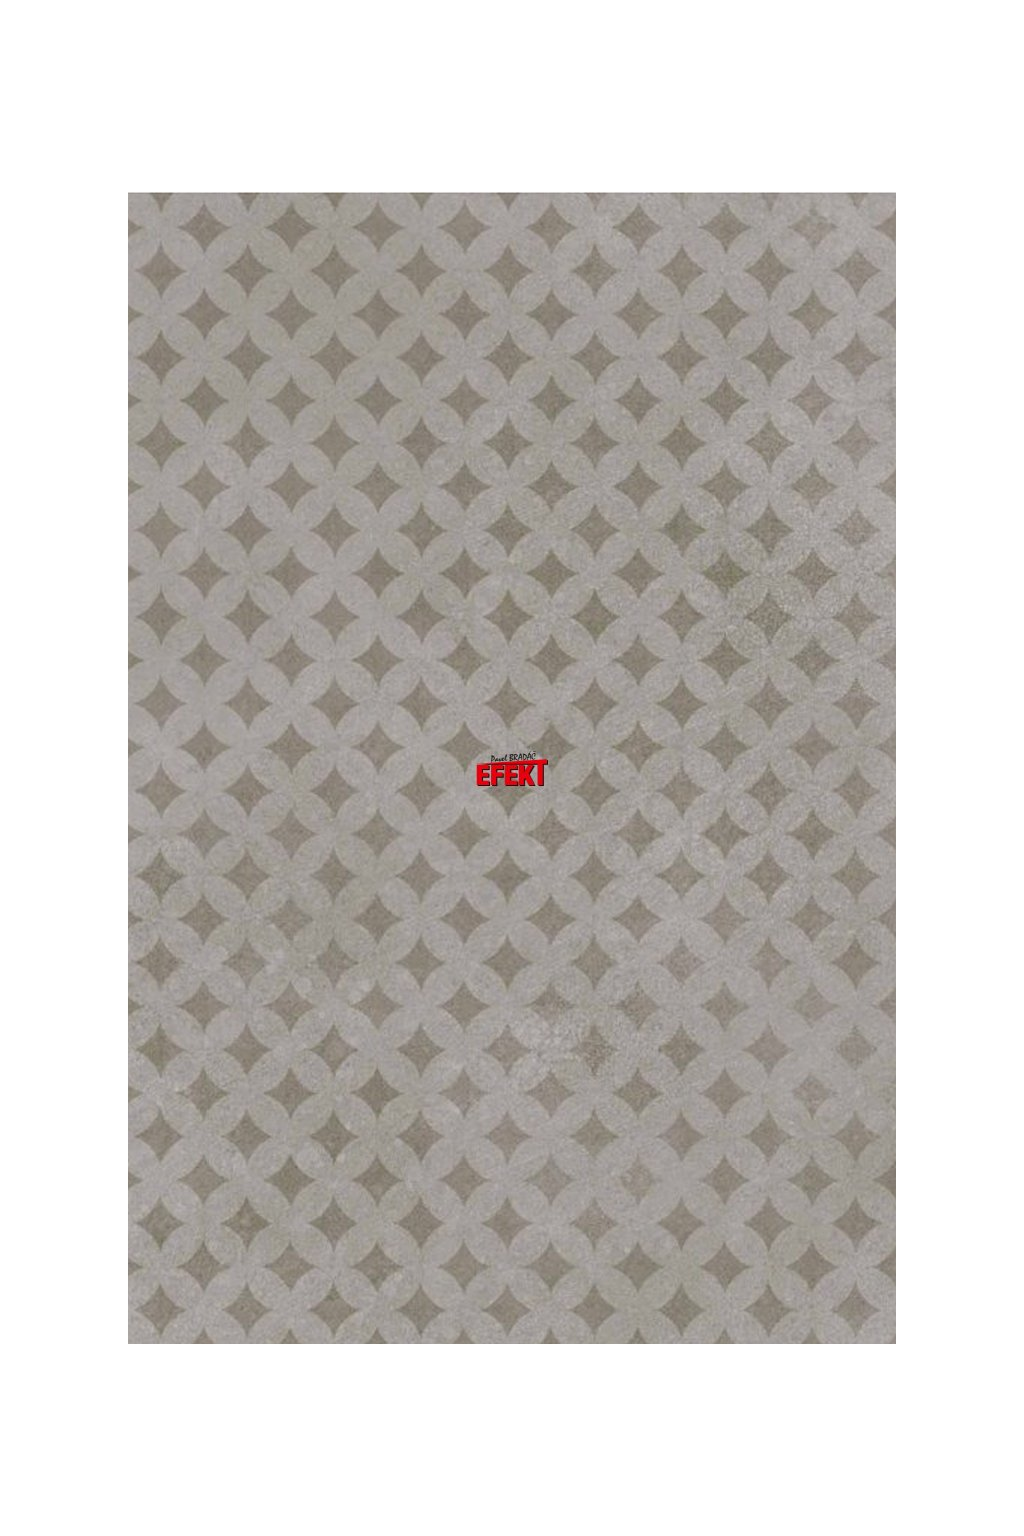 Gerflor Clic 55 Bloom Taupe